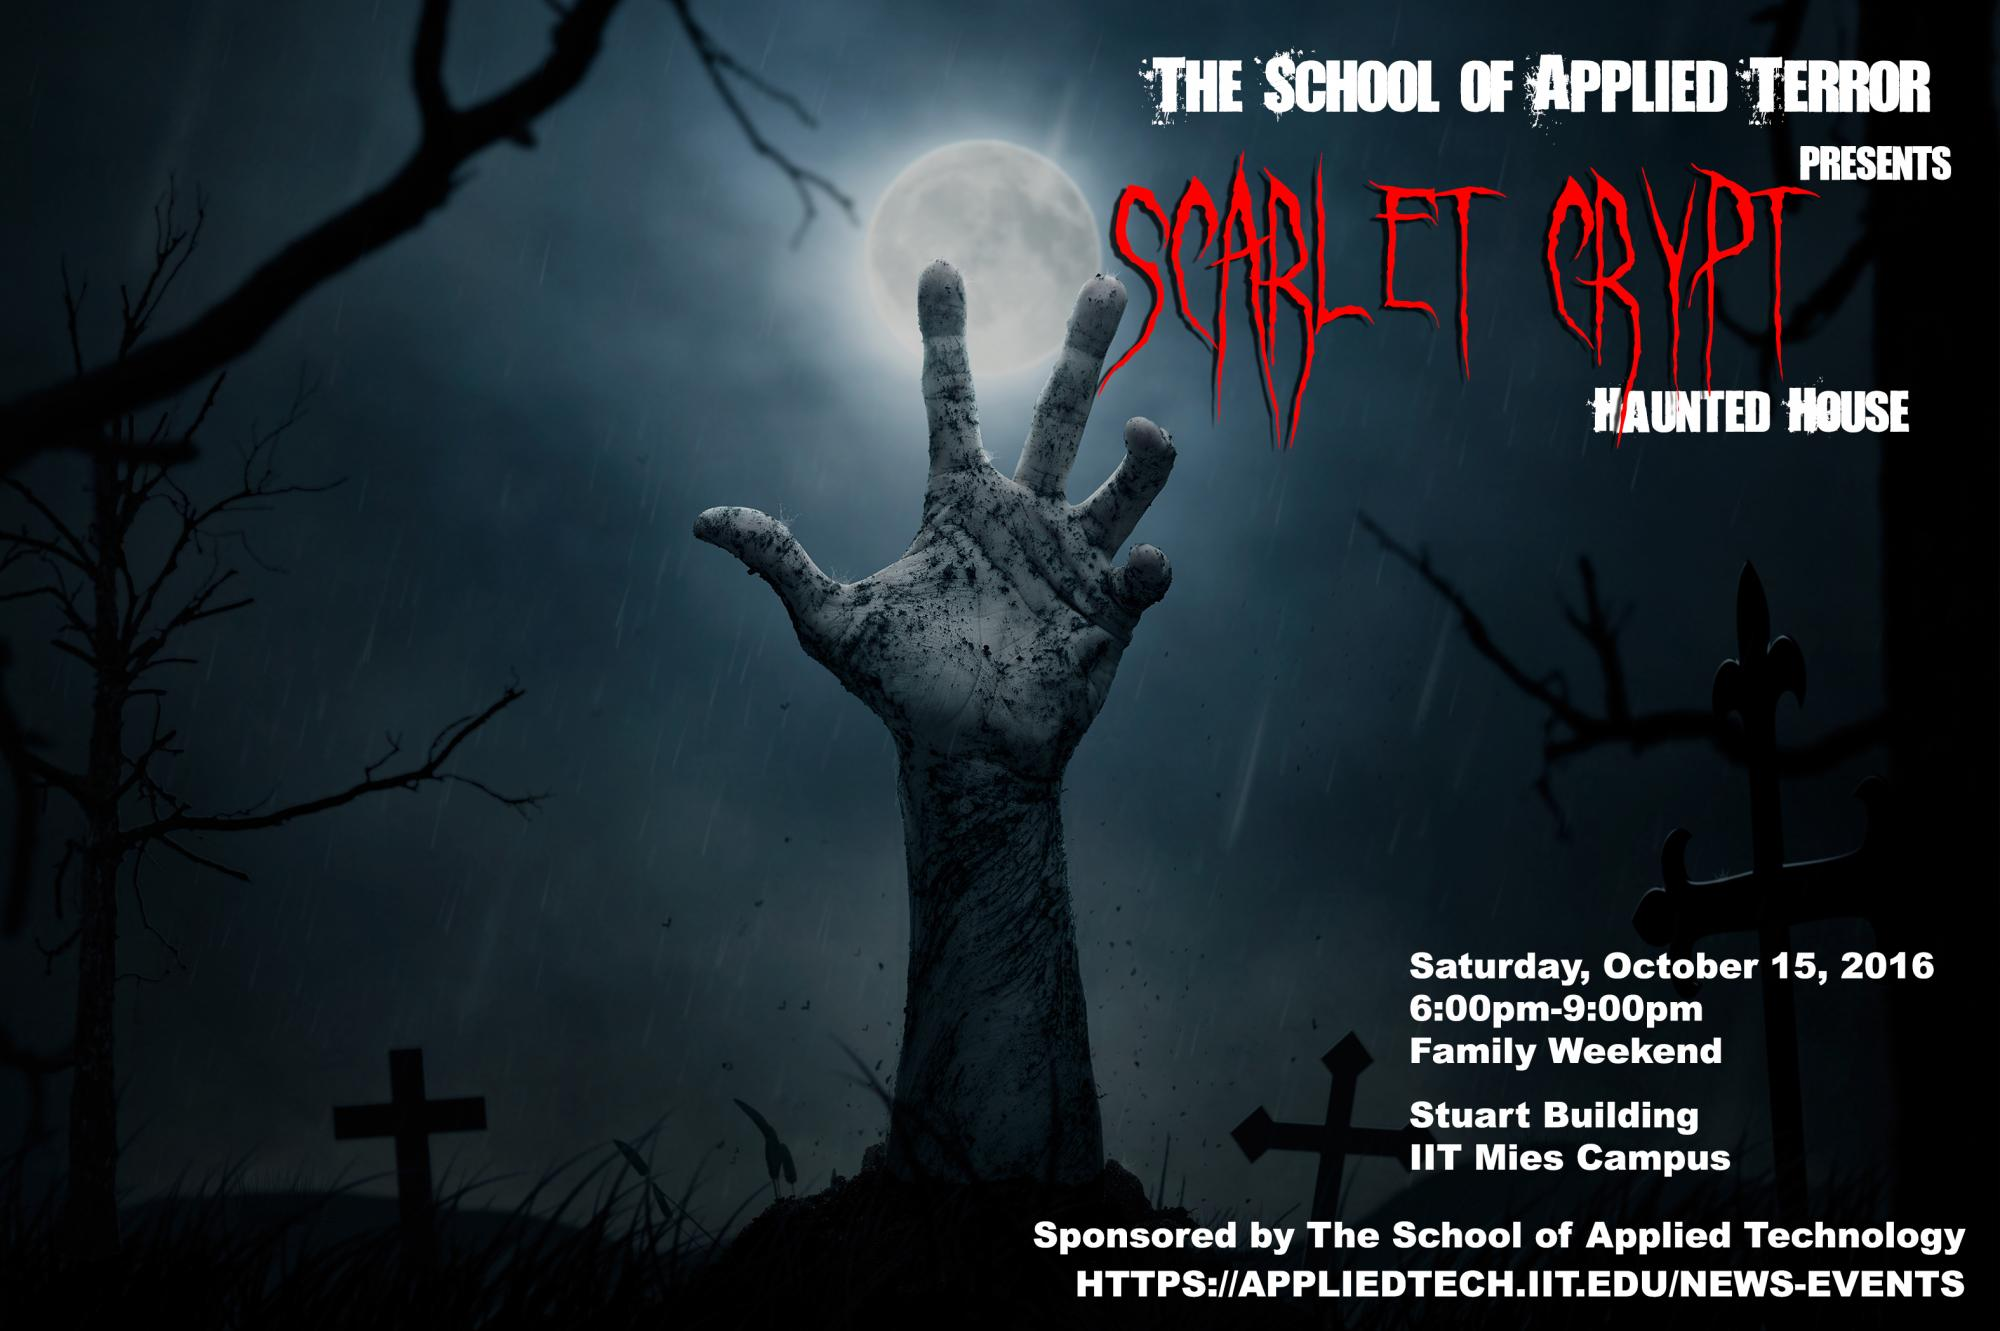 Scarlet Crypt Event Poster